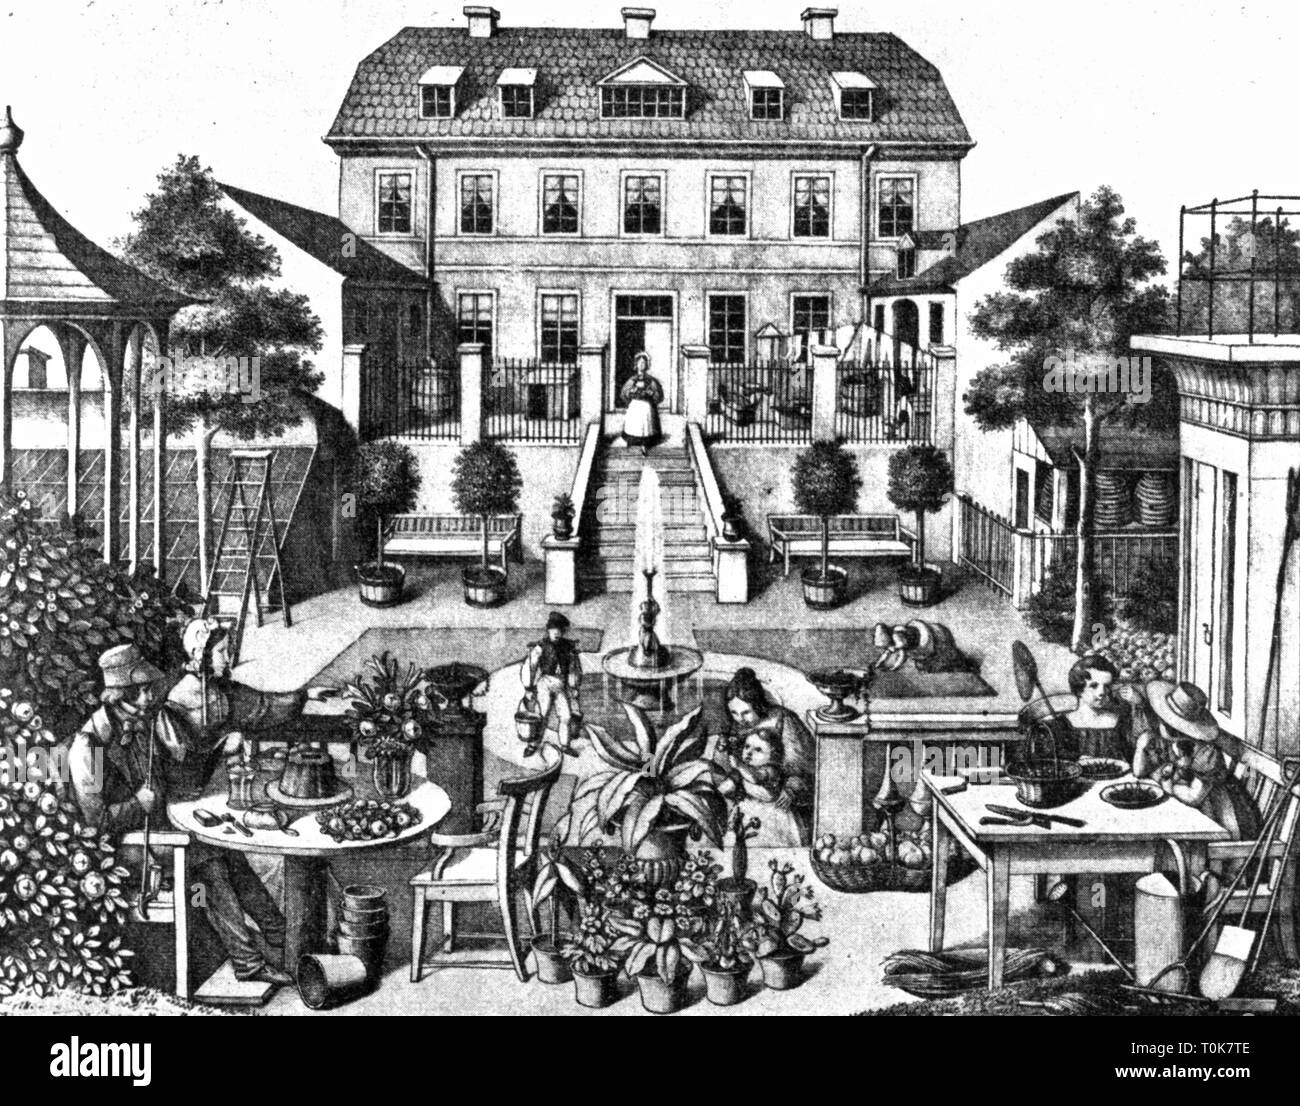 gastronomy, inns, tavern in Prussa, exterior view,  tithograph, 19th century, 19th century, graphic, graphics, tavern, hotel, restaurant, taverns, inn, inns, guest, guests, table, tables, chairs, chair, sitting, sit, terrace, terraces, garden, gardens, flowers, flower, fountain, fountains, steps, building, buildings, water carrier, service, waitress, waitresses, historic, historical, female, woman, women, male, man, men, child, children, Additional-Rights-Clearance-Info-Not-Available - Stock Image